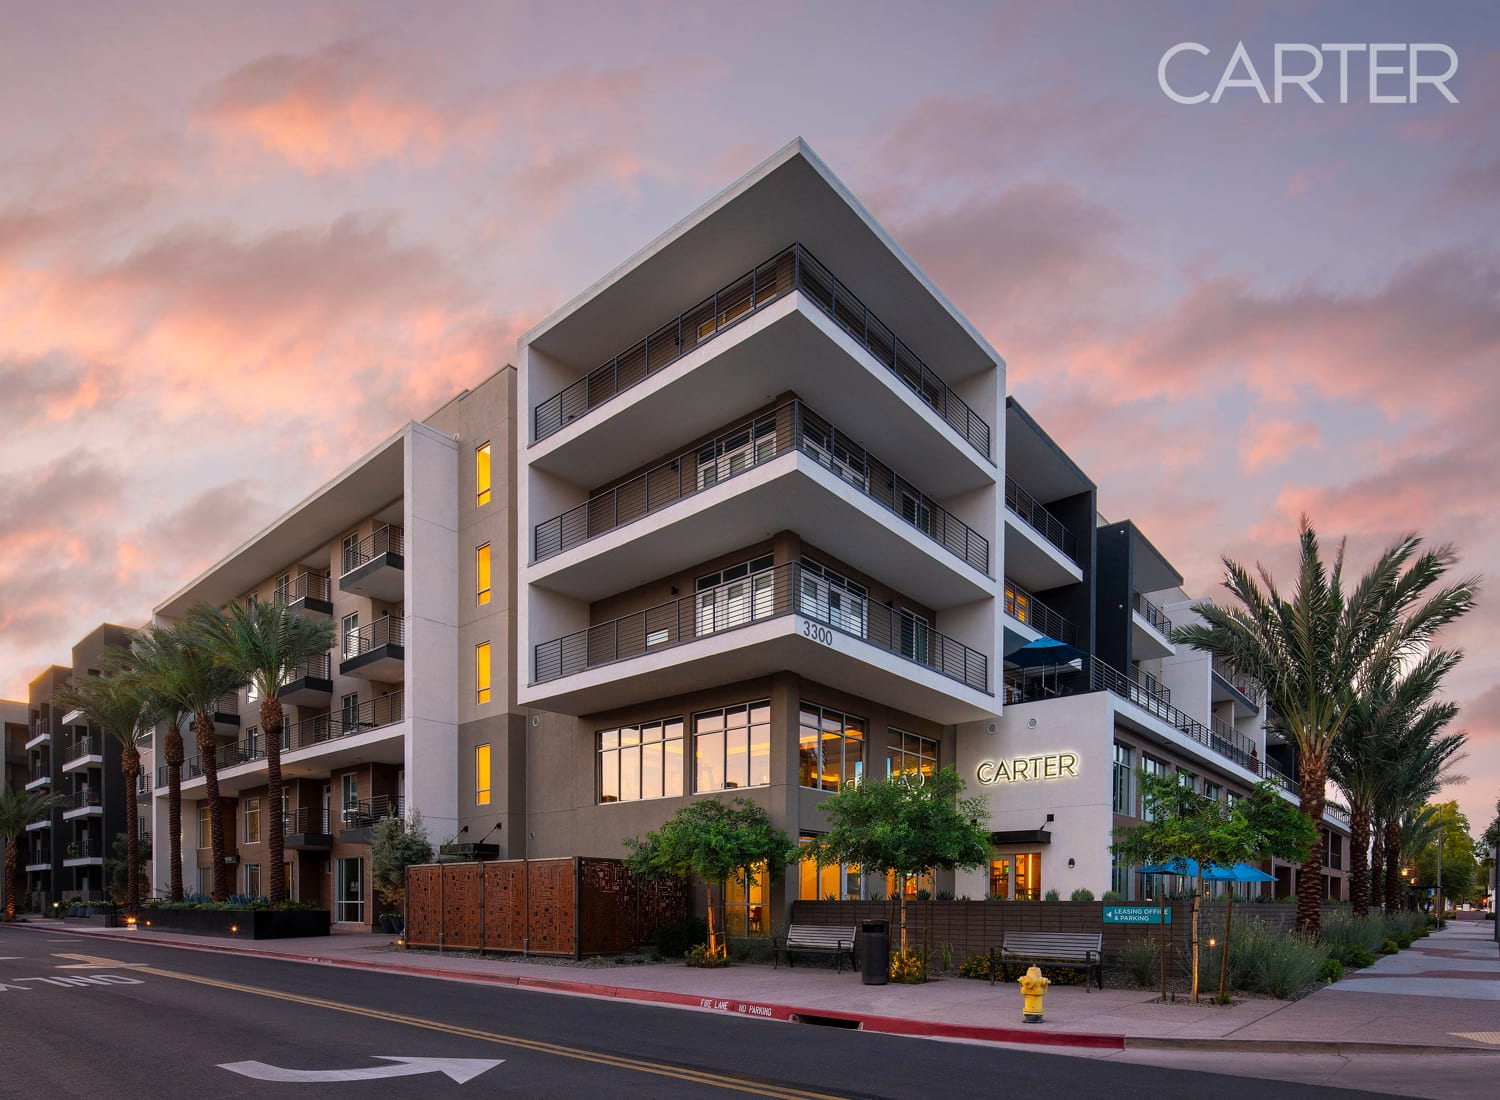 Carter apartments in Scottsdale, Arizona